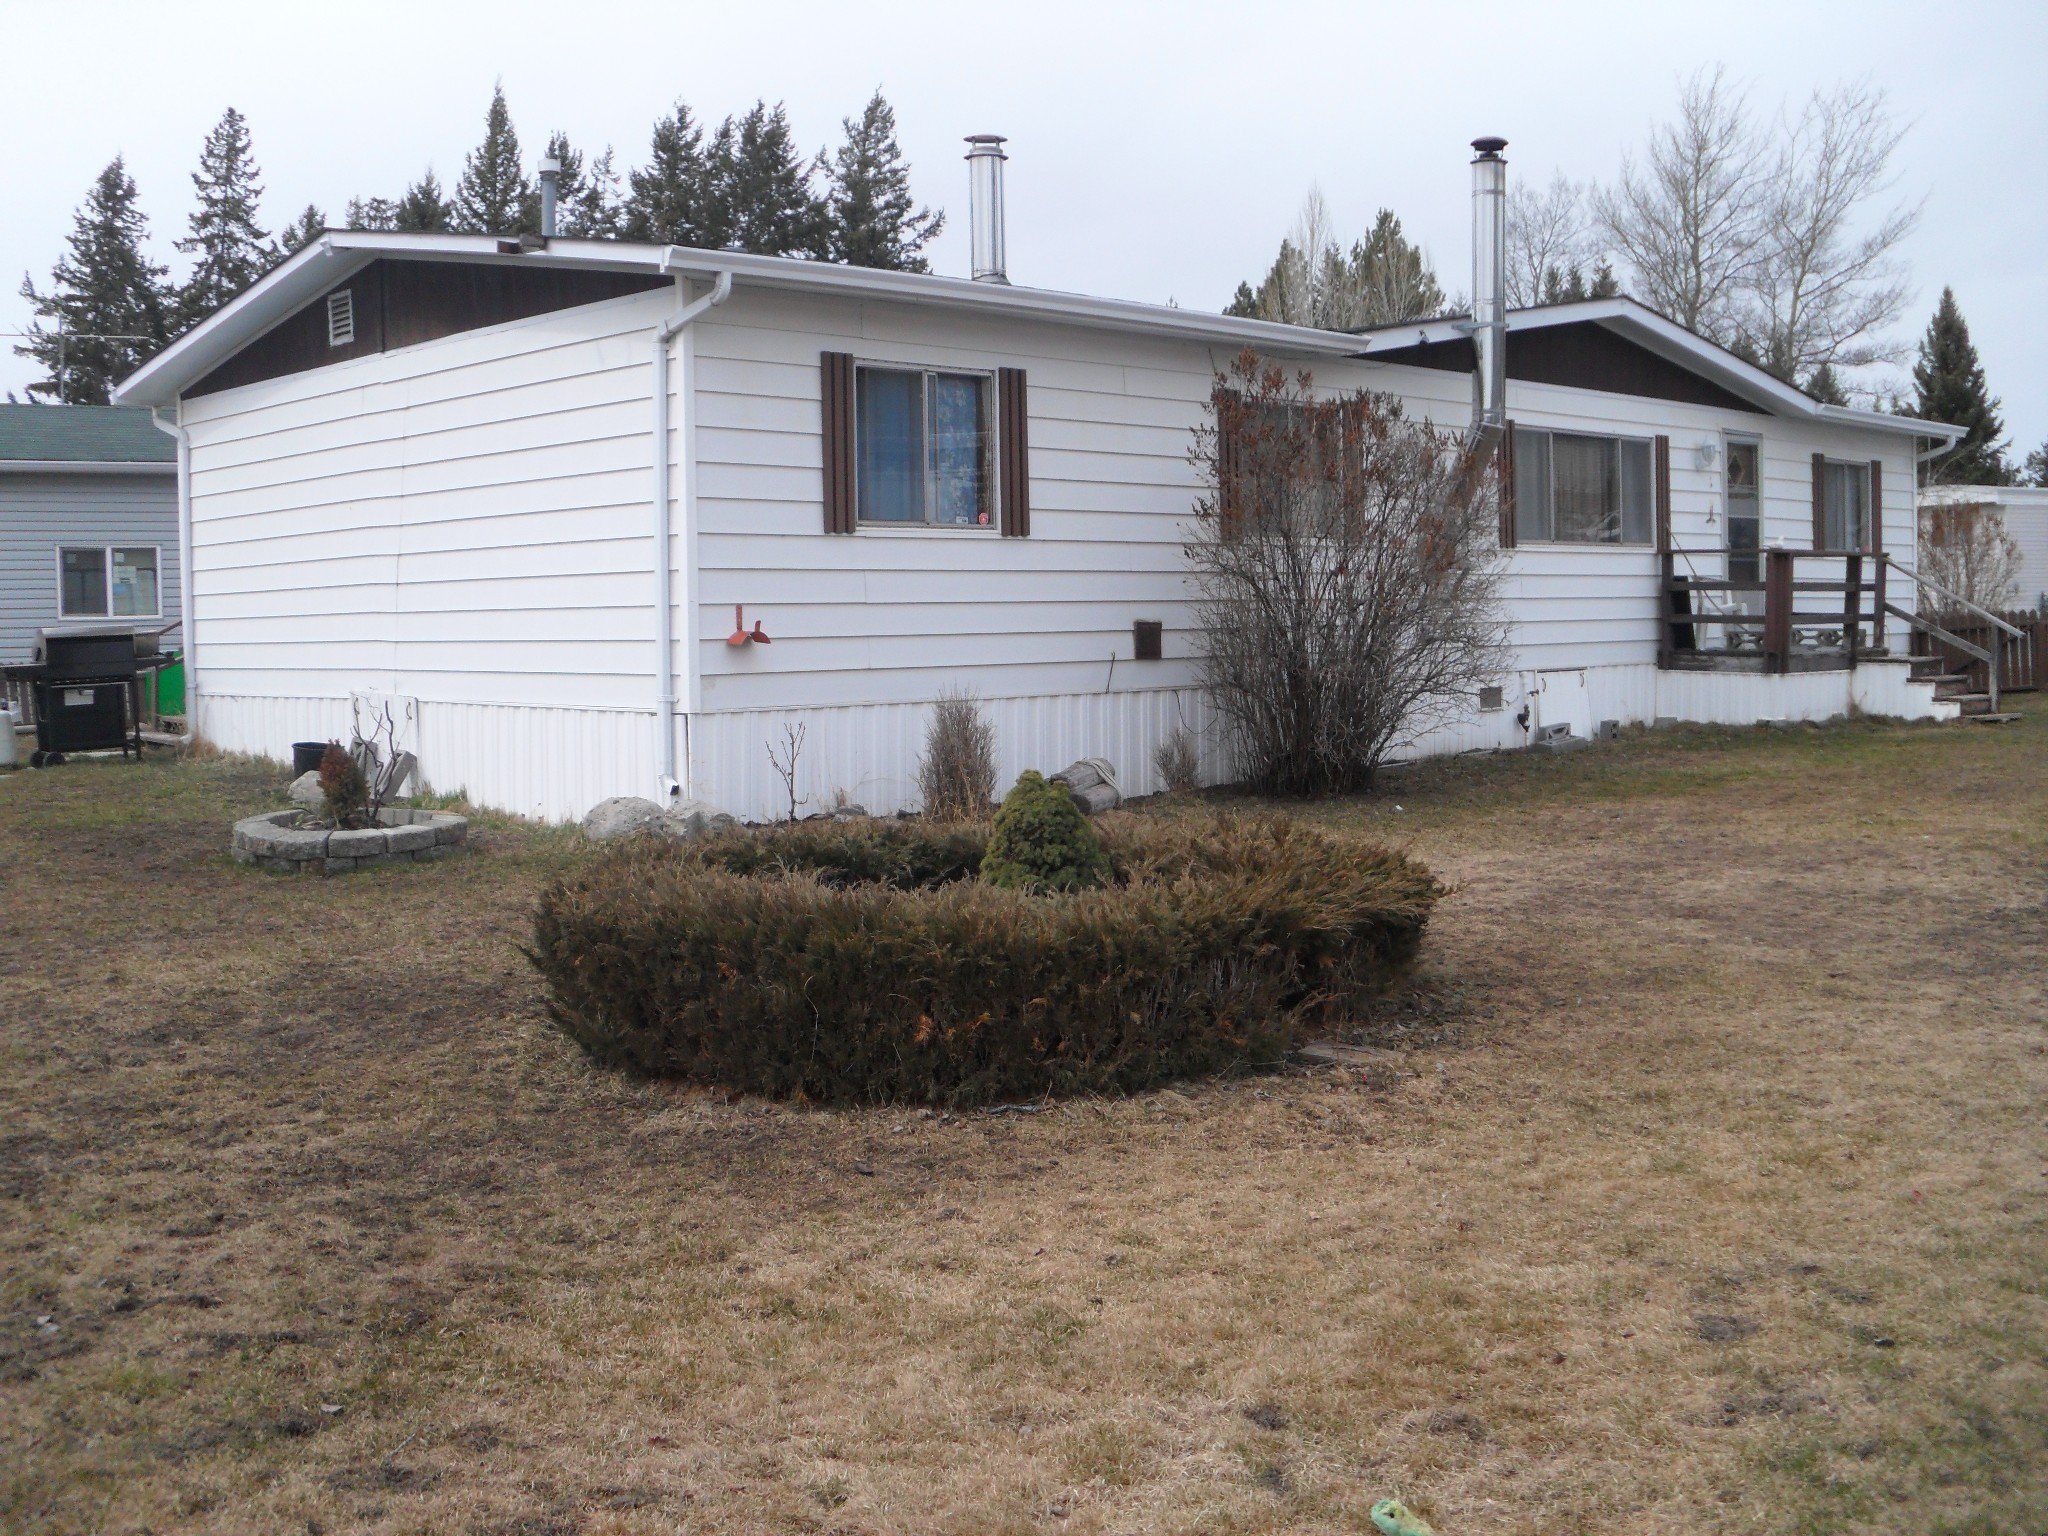 Main Photo: 8 Jade Crt: Logan Lake Manufactured Home for sale (kAMLOOPS)  : MLS®# 145231